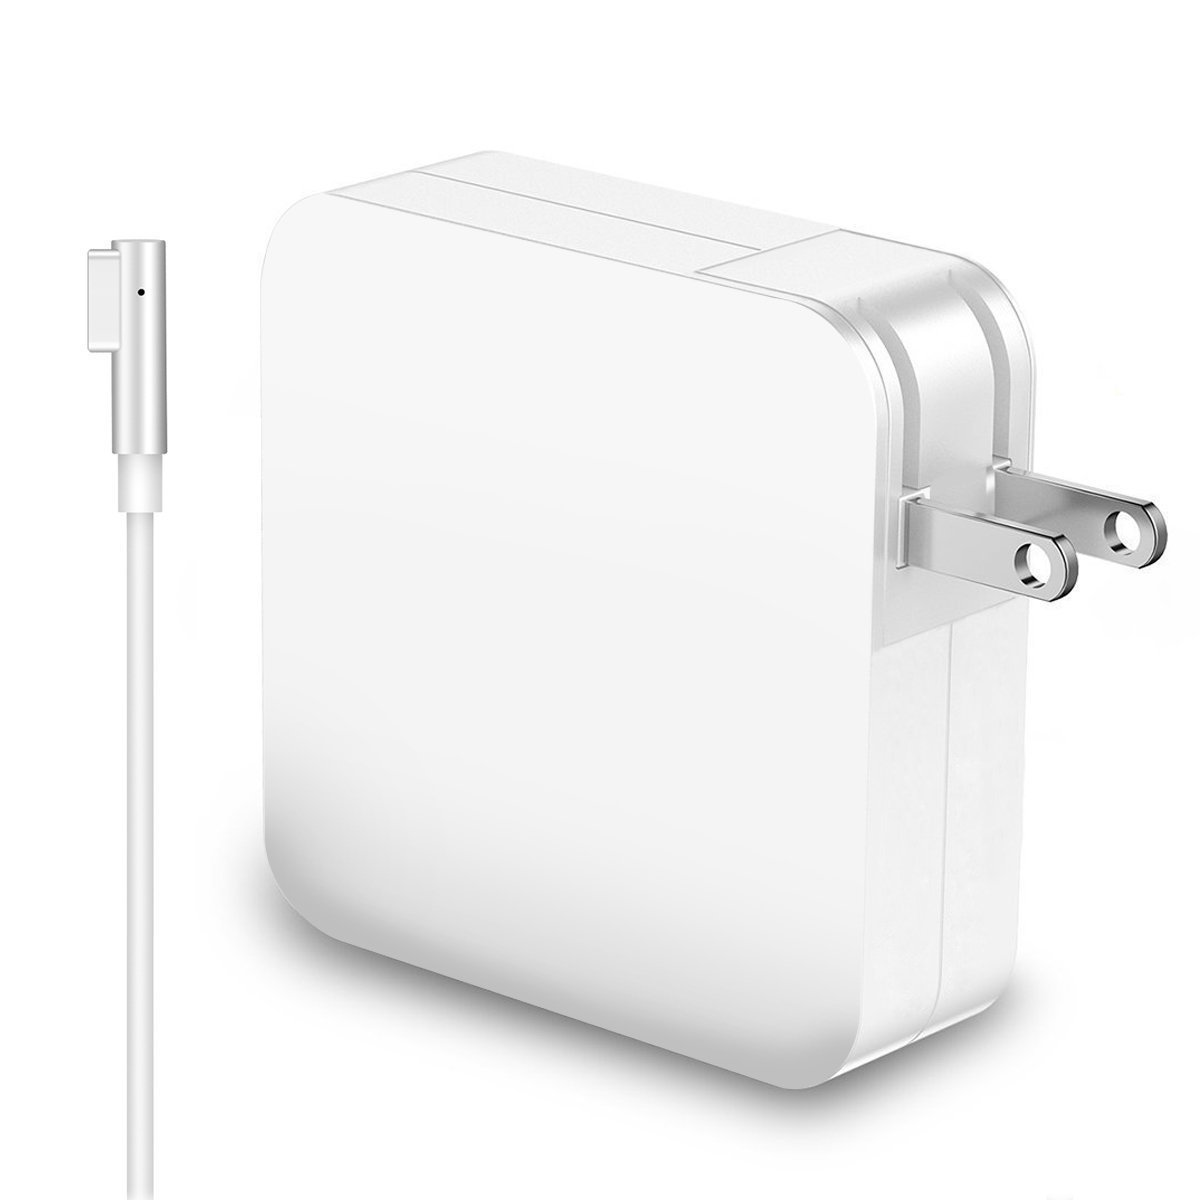 R60-L MacBook Pro Charger, MacBook Air Charger,MacBook Charger Replacement L-Tip 60W Magsafe Power Adapter for Apple MacBook Pro 13-inch, L-Shape (Before 2012)